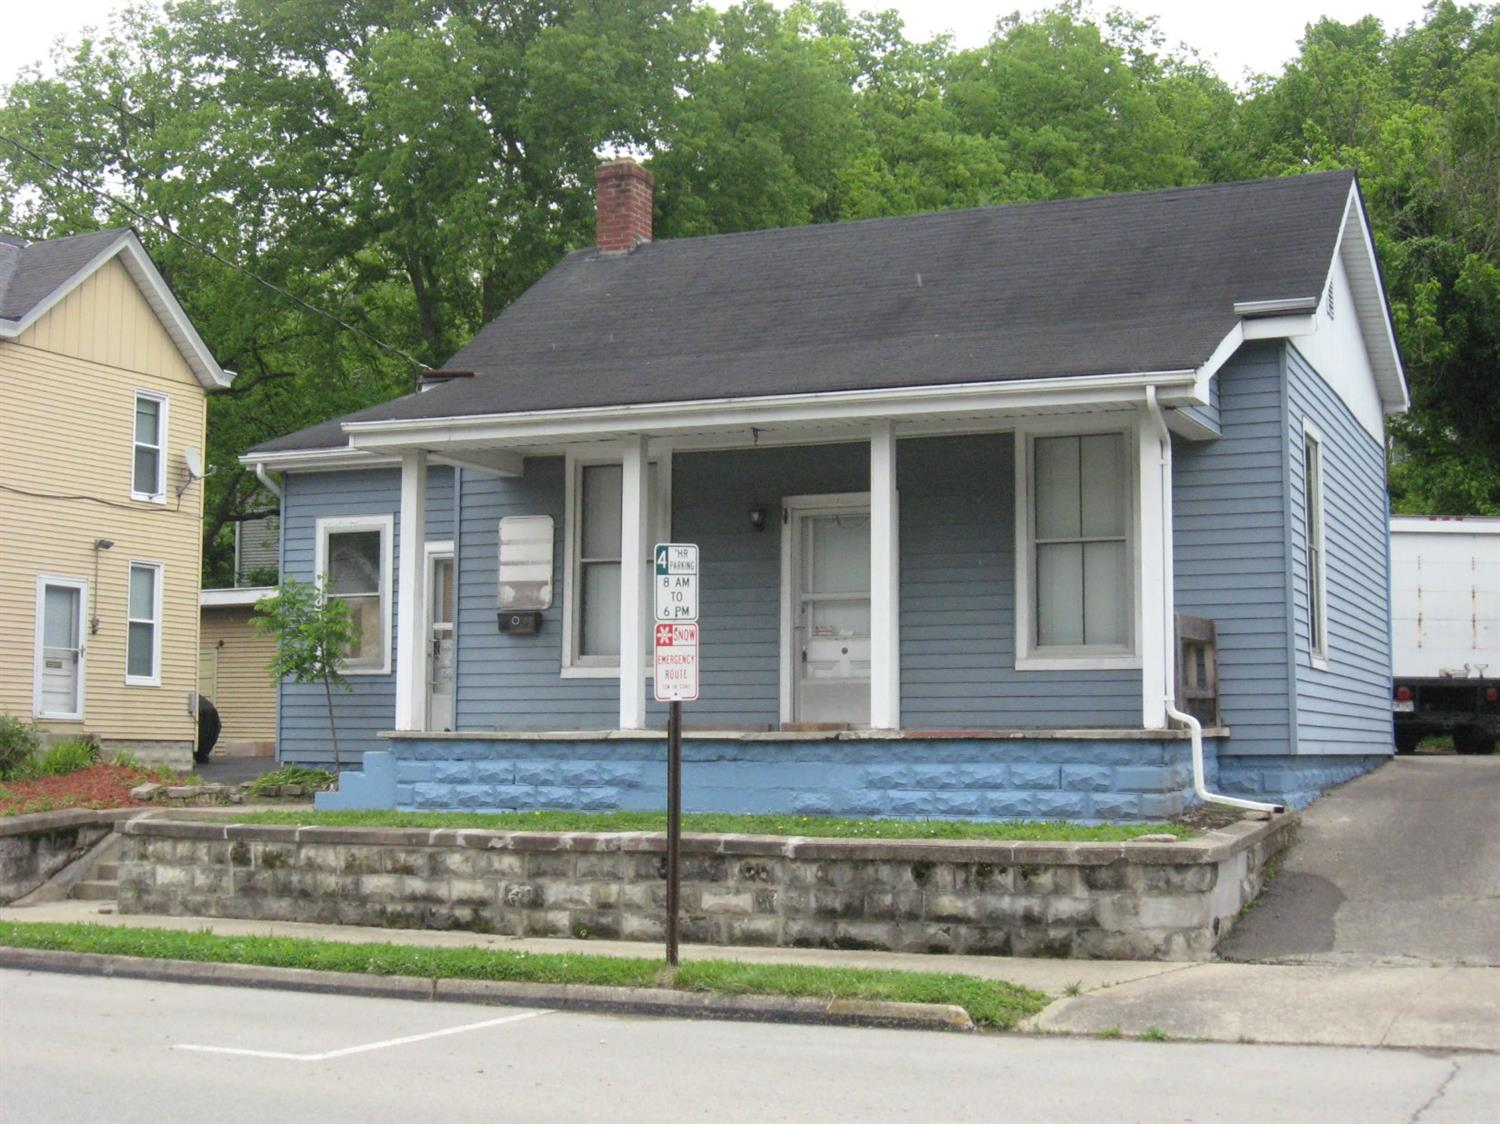 414 Main St Milford, OH